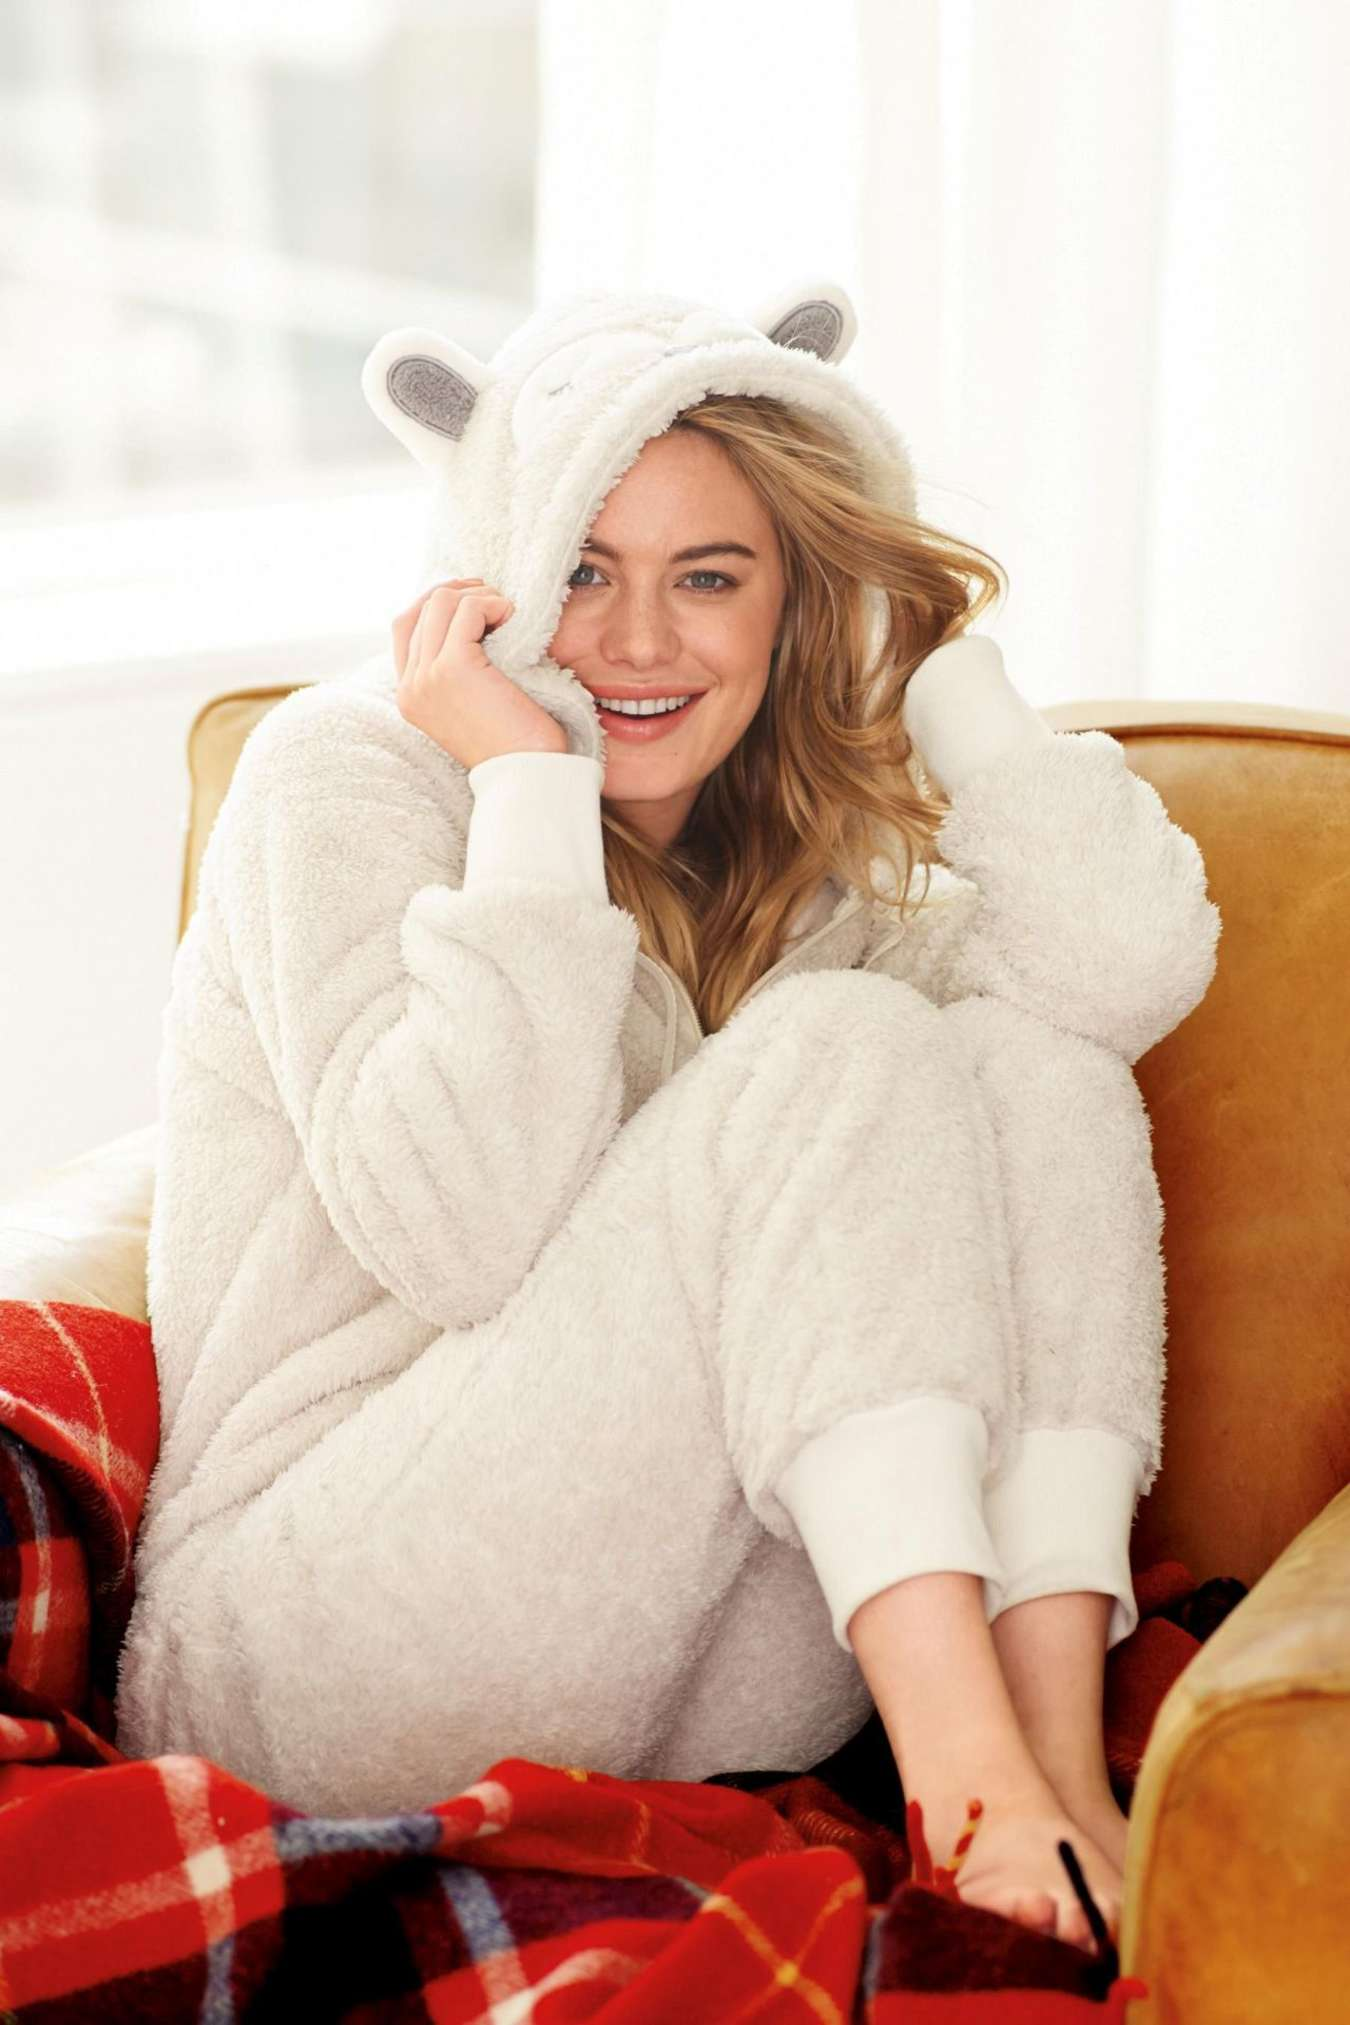 Camille Rowe Next Sleepwear Photoshoot